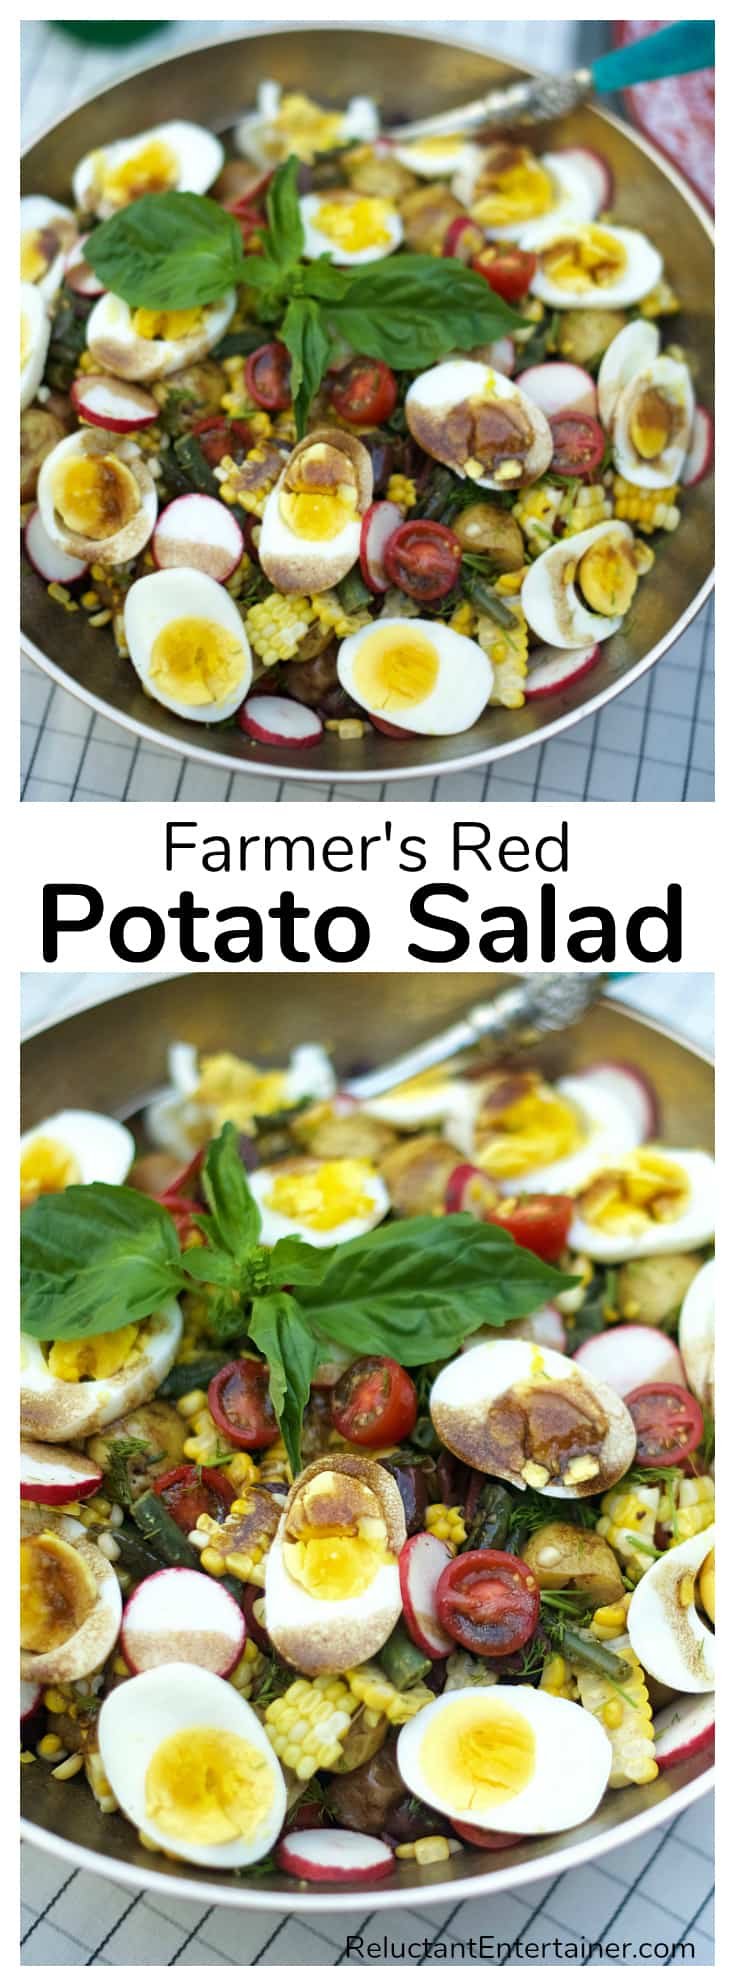 Farmer's Red Potato Salad Recipe